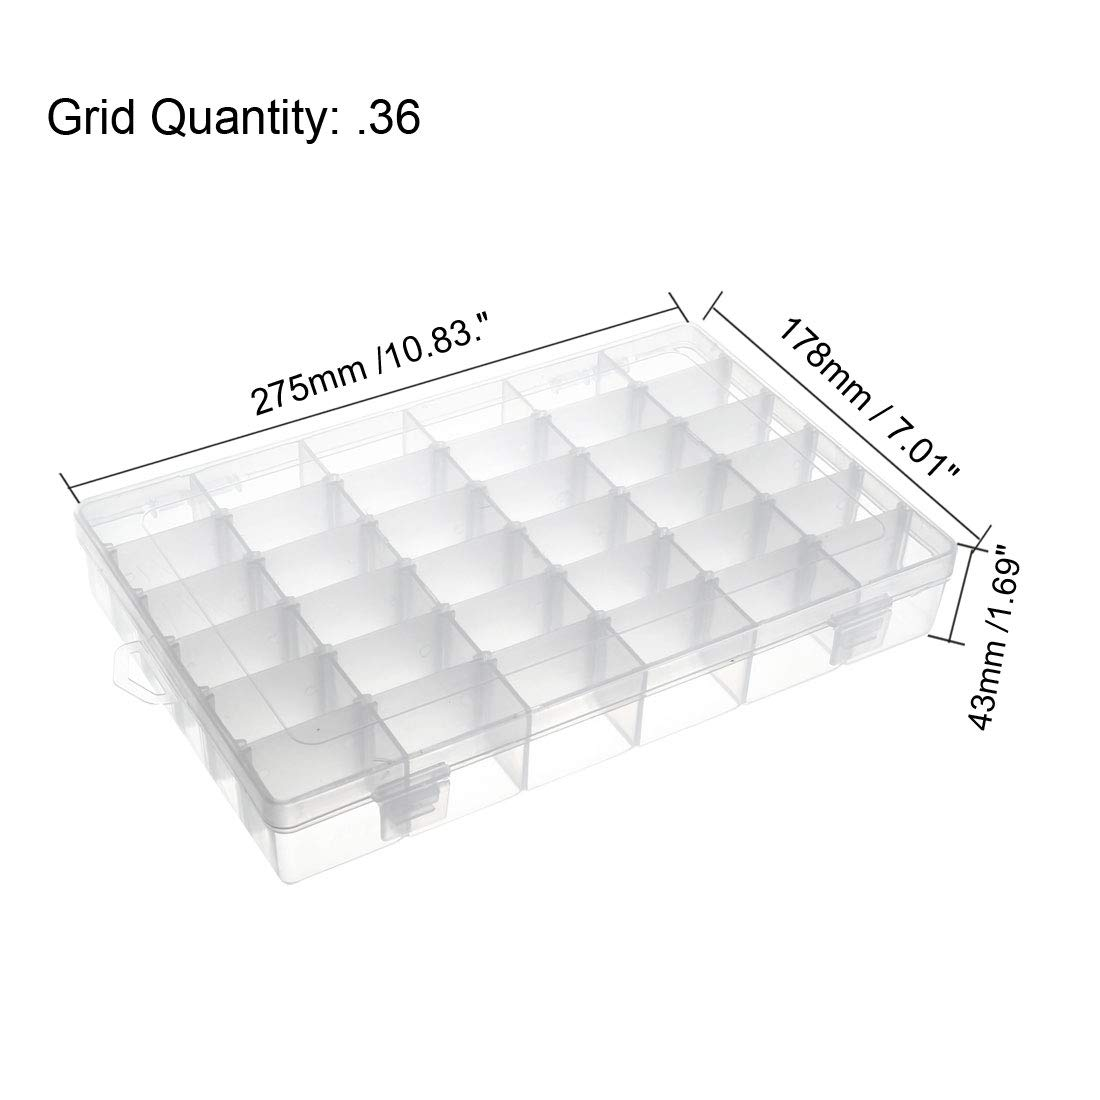 PP Fixed 6 Grids Electronic Component Containers Tool Boxes Clear White 120x80x23mm uxcell/® Component Storage Box